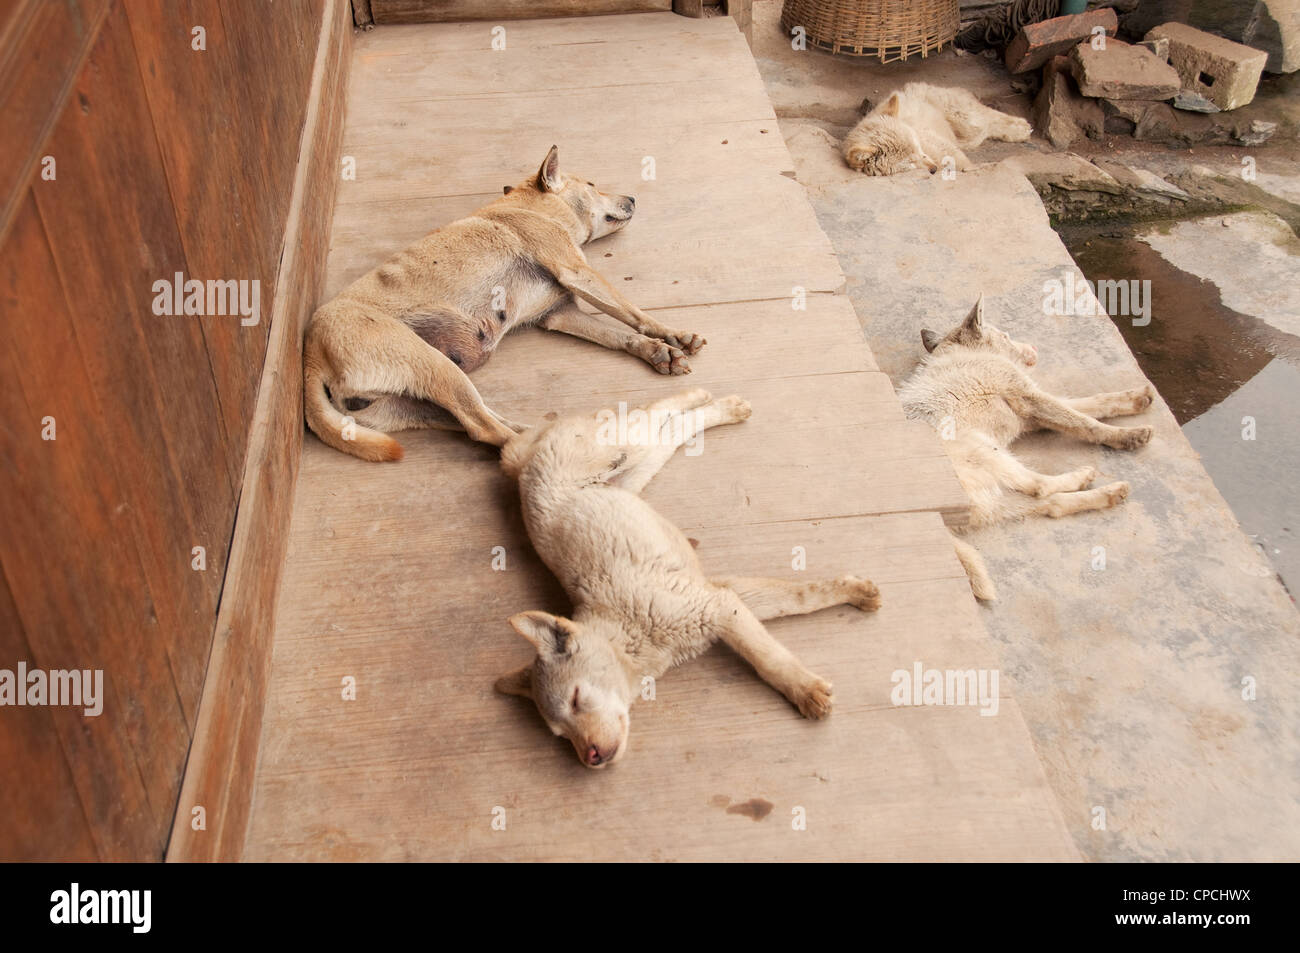 Four dogs sleeping on the steps of a Basha Miao (Gun Men) house, Southern China - Stock Image